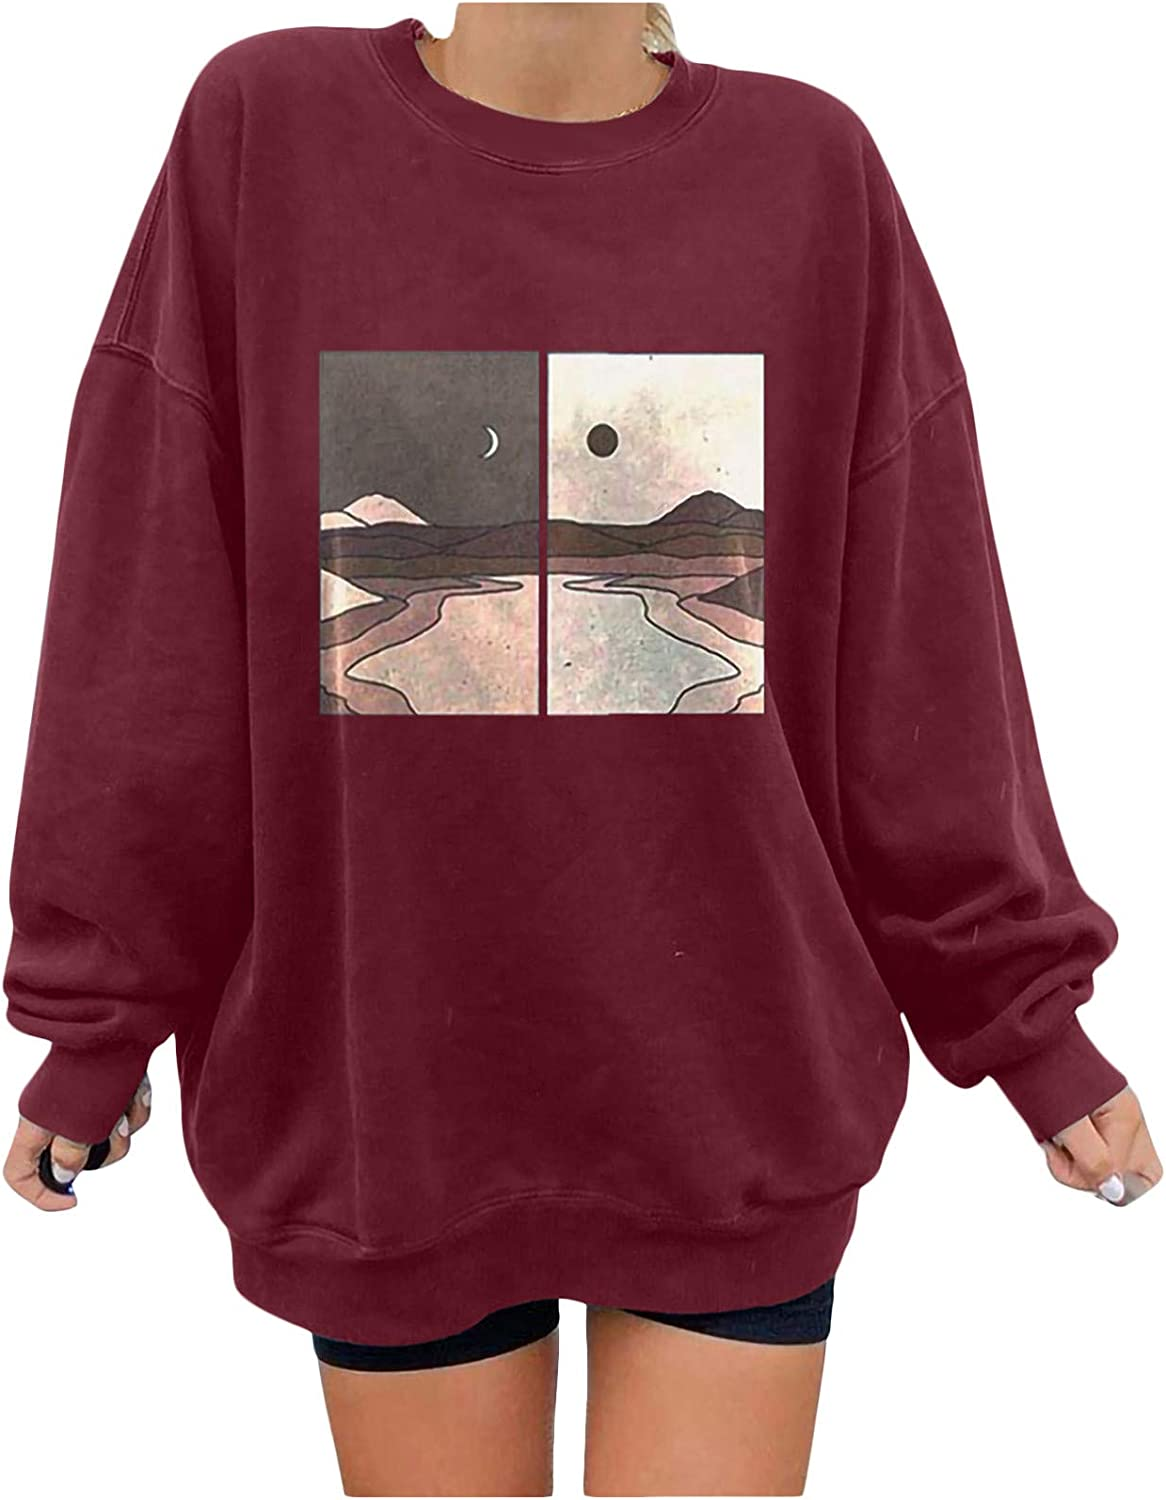 Long Sleeve Shirts for Women Indefinitely Tucson Mall Landscape Moon Natural Graphic Sun